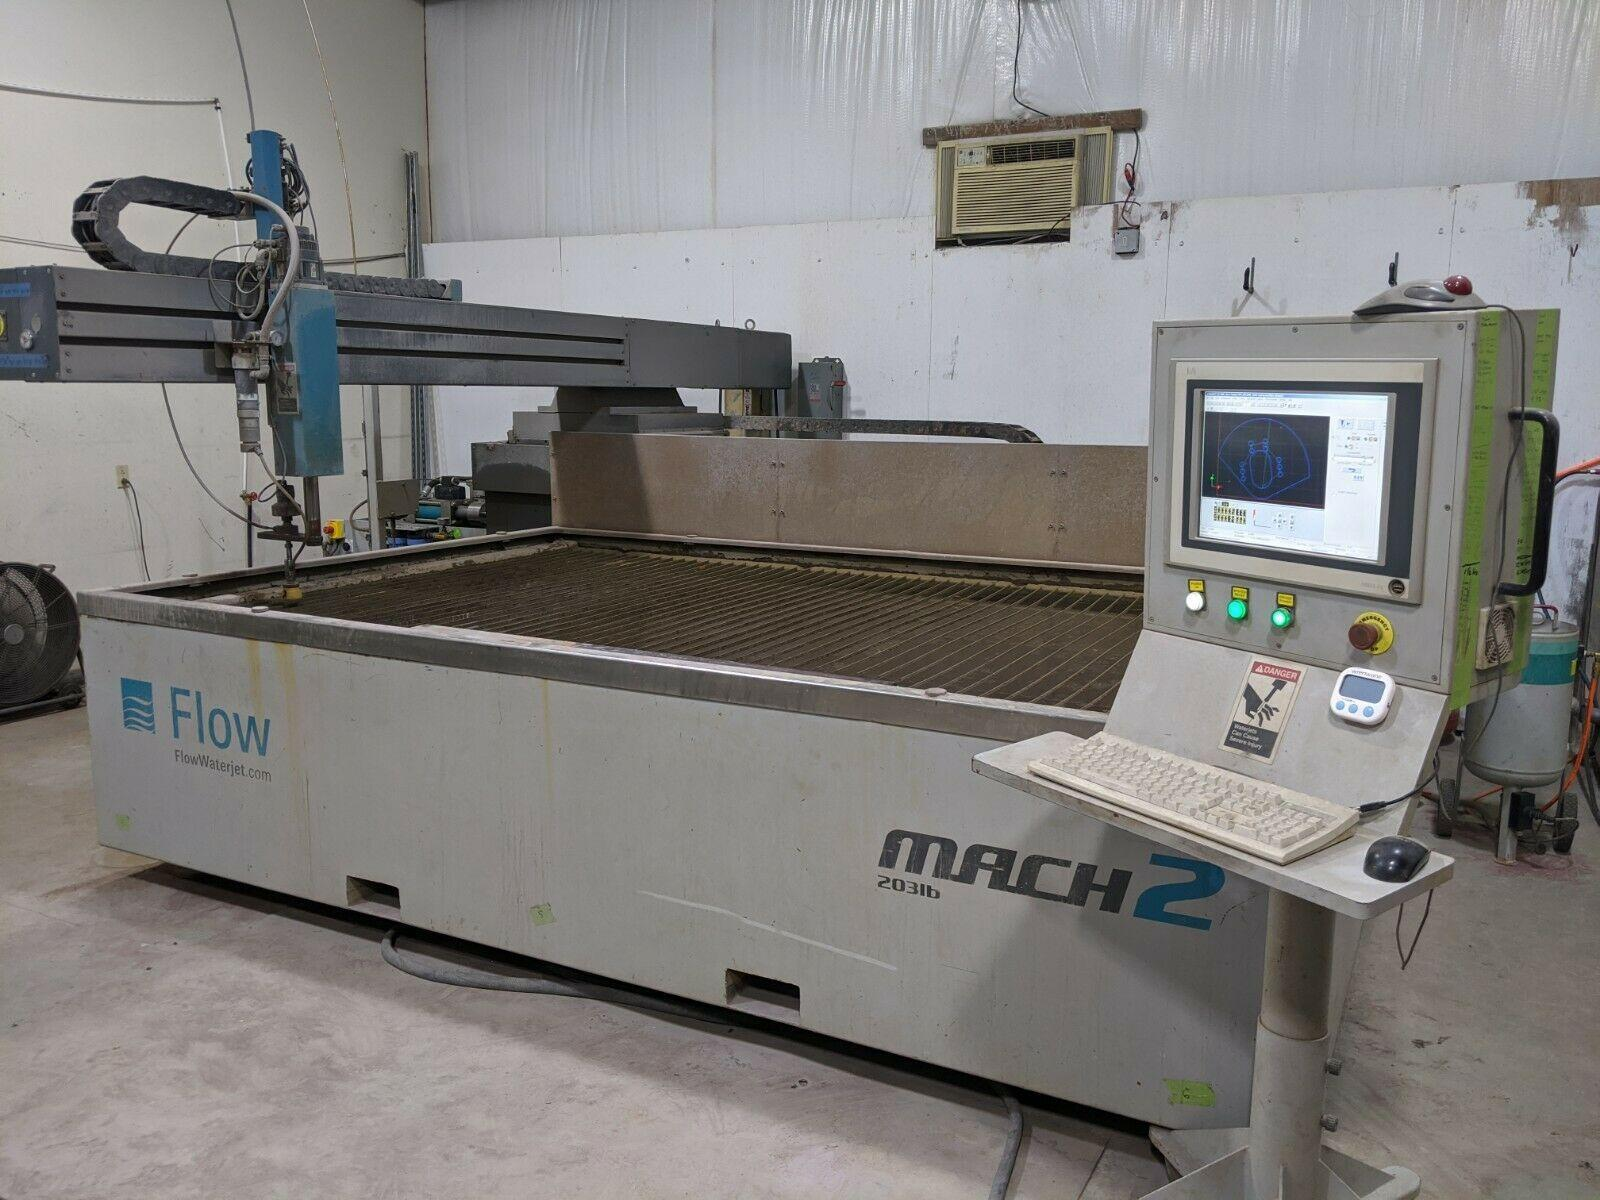 2014 Flow 4020 Mach 2, 6' x 13', 60,000 PSI Waterjet